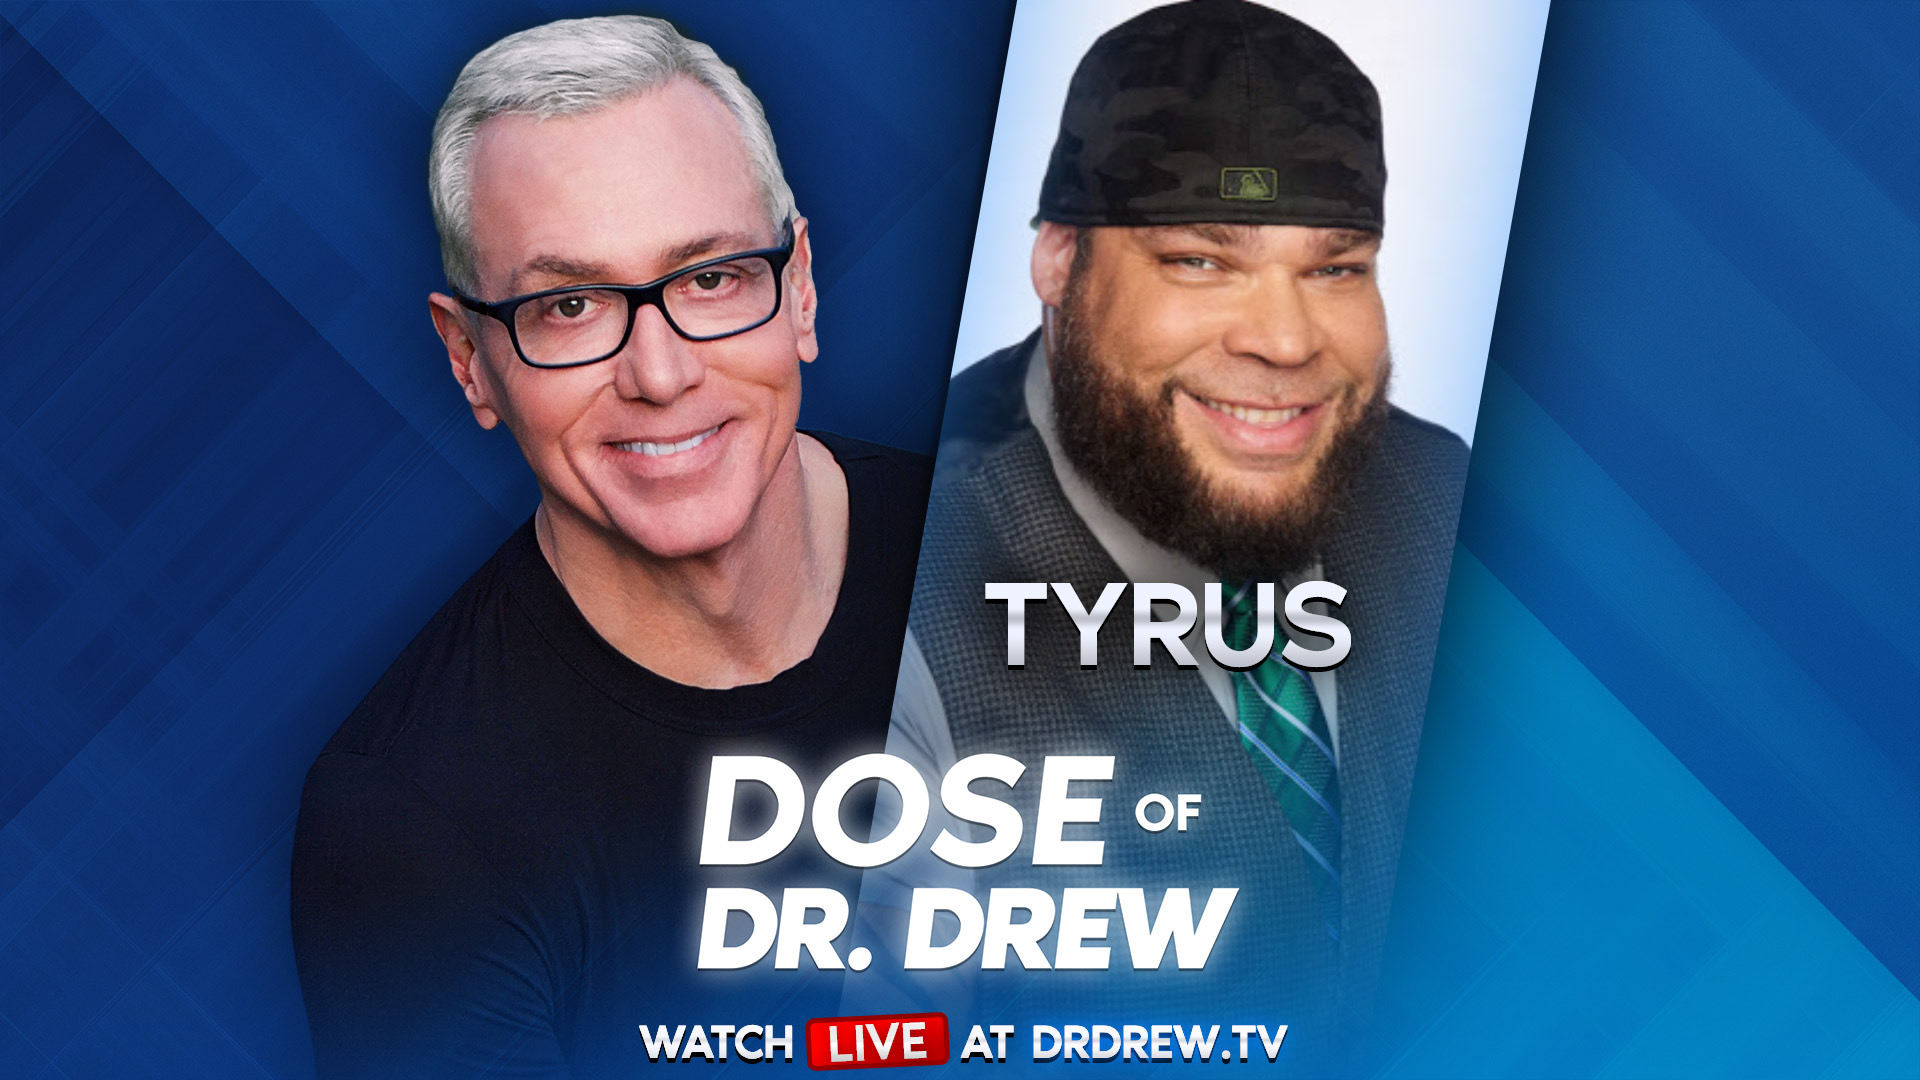 Tyrus Taking Calls On Wednesdays Dose Of Dr Drew Live!